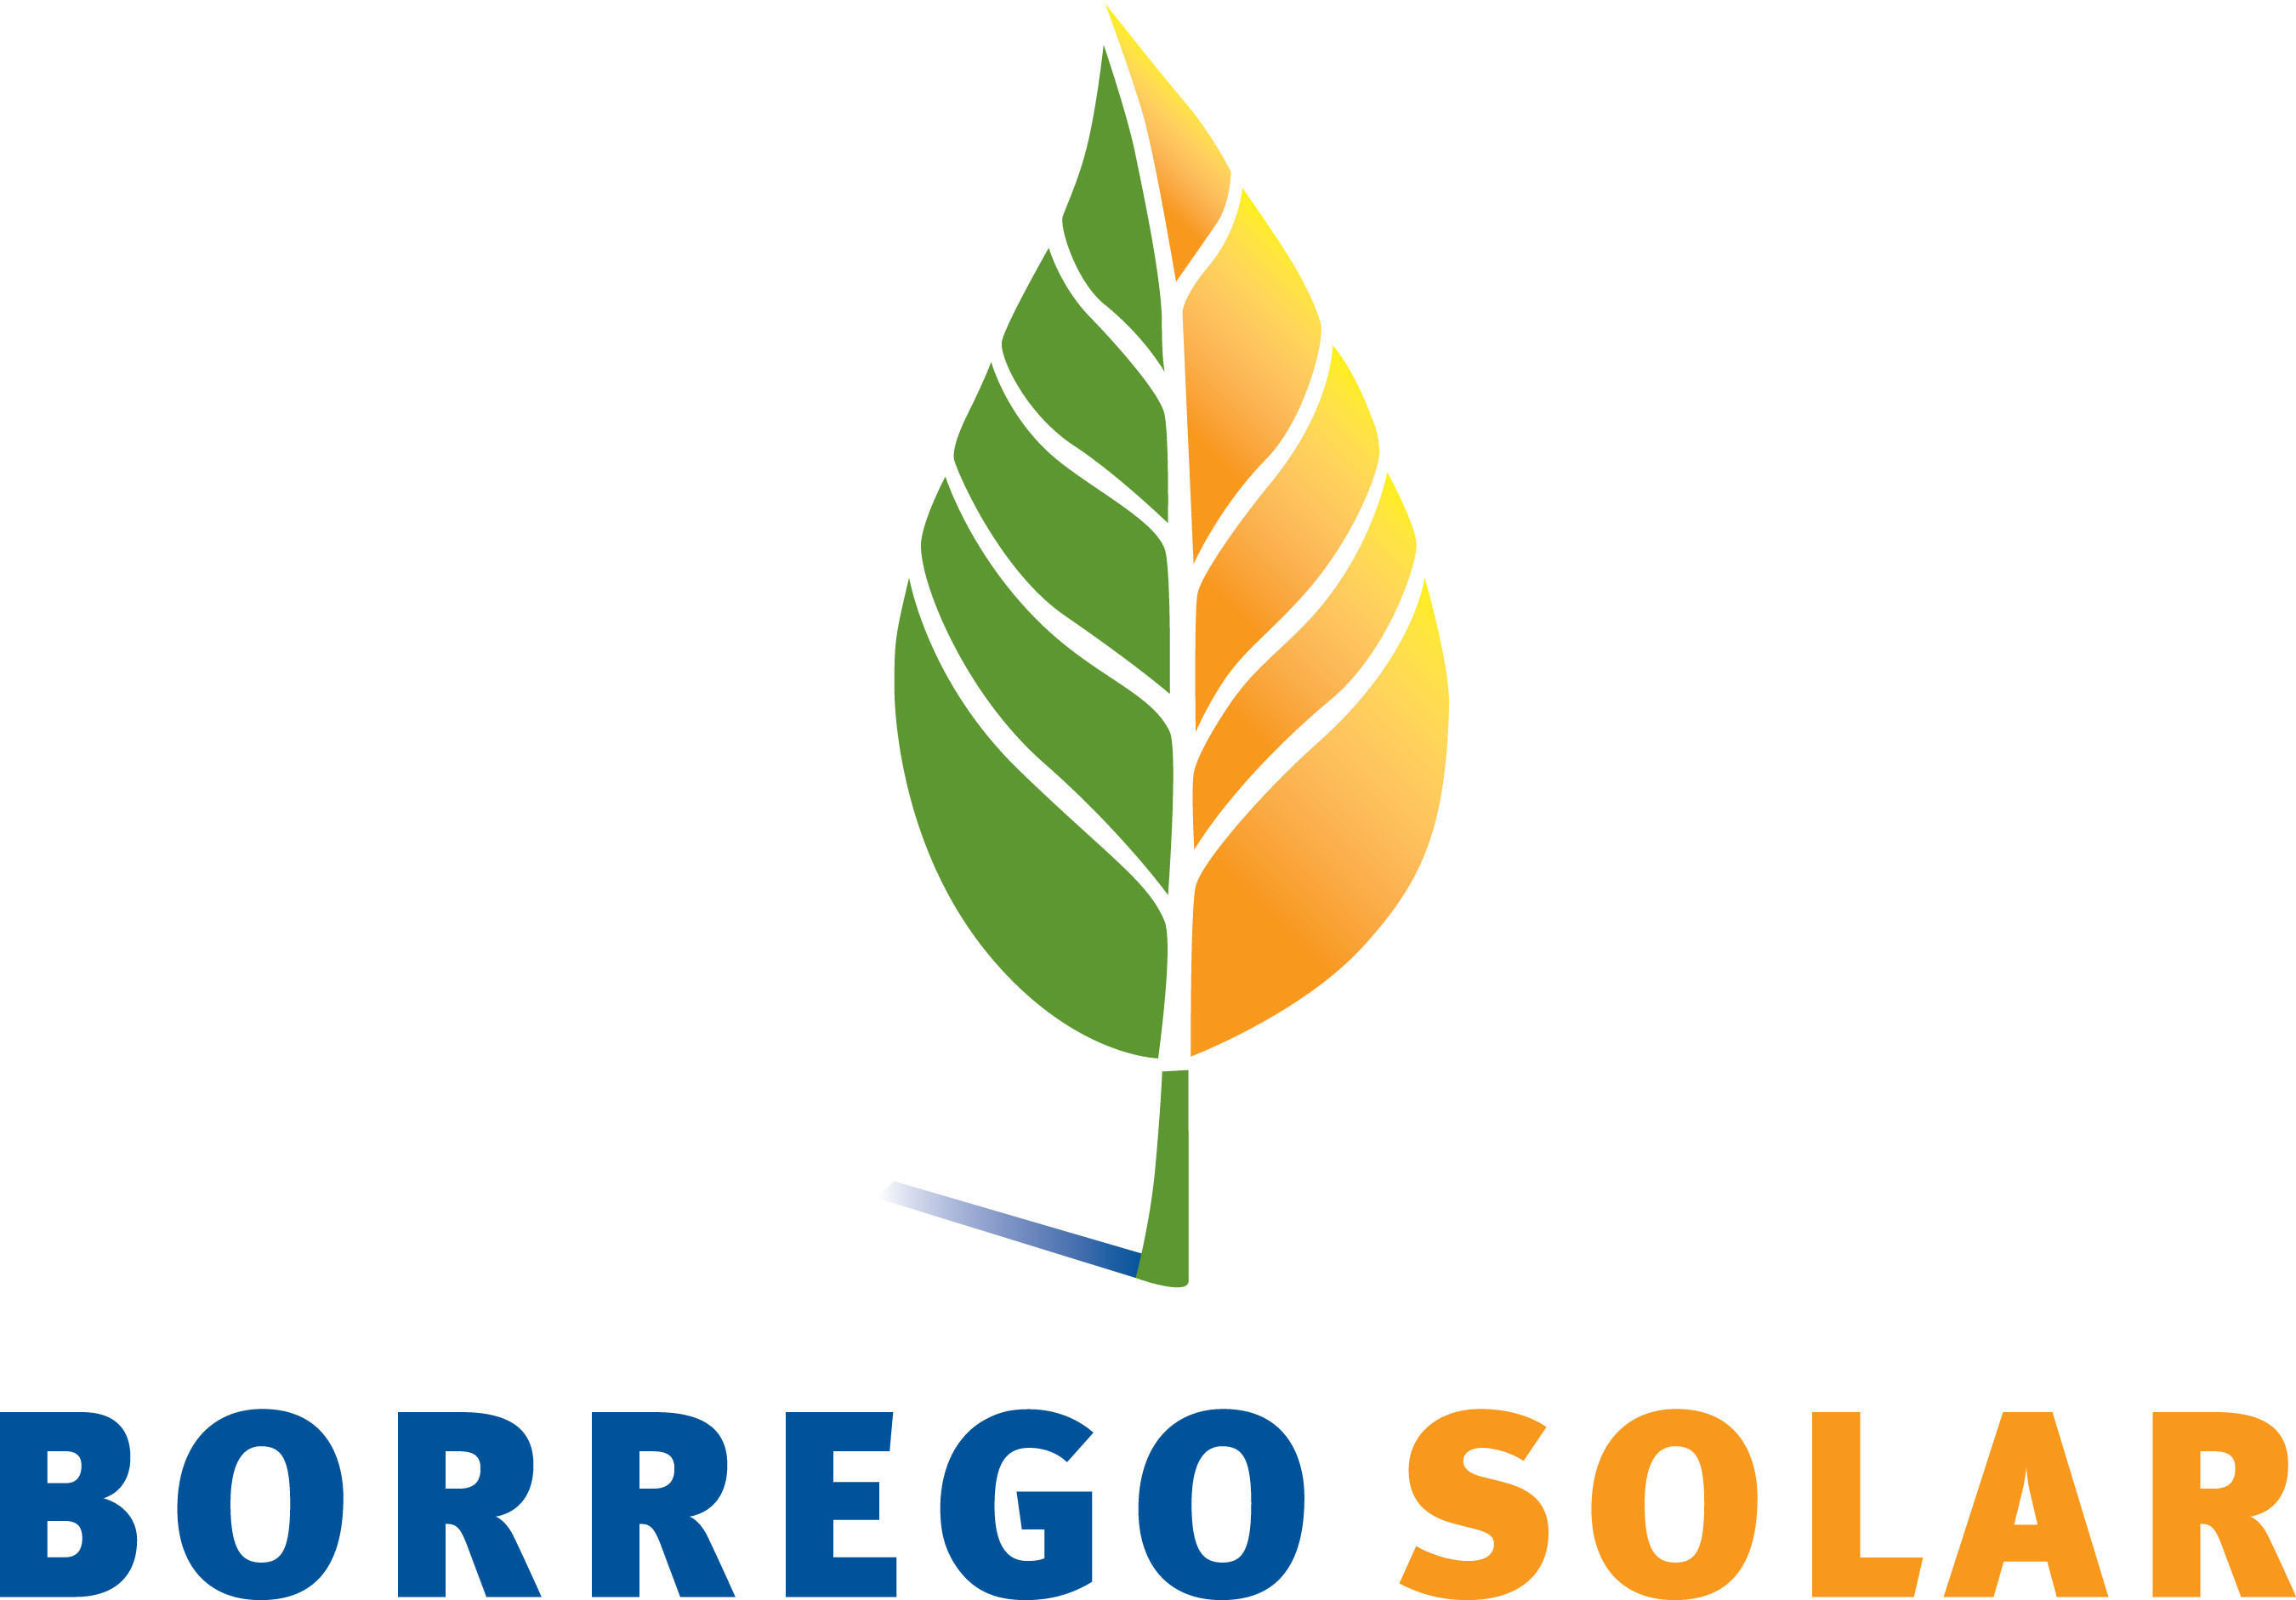 Borrego Solar Closes 2014 With 40 Percent Growth In